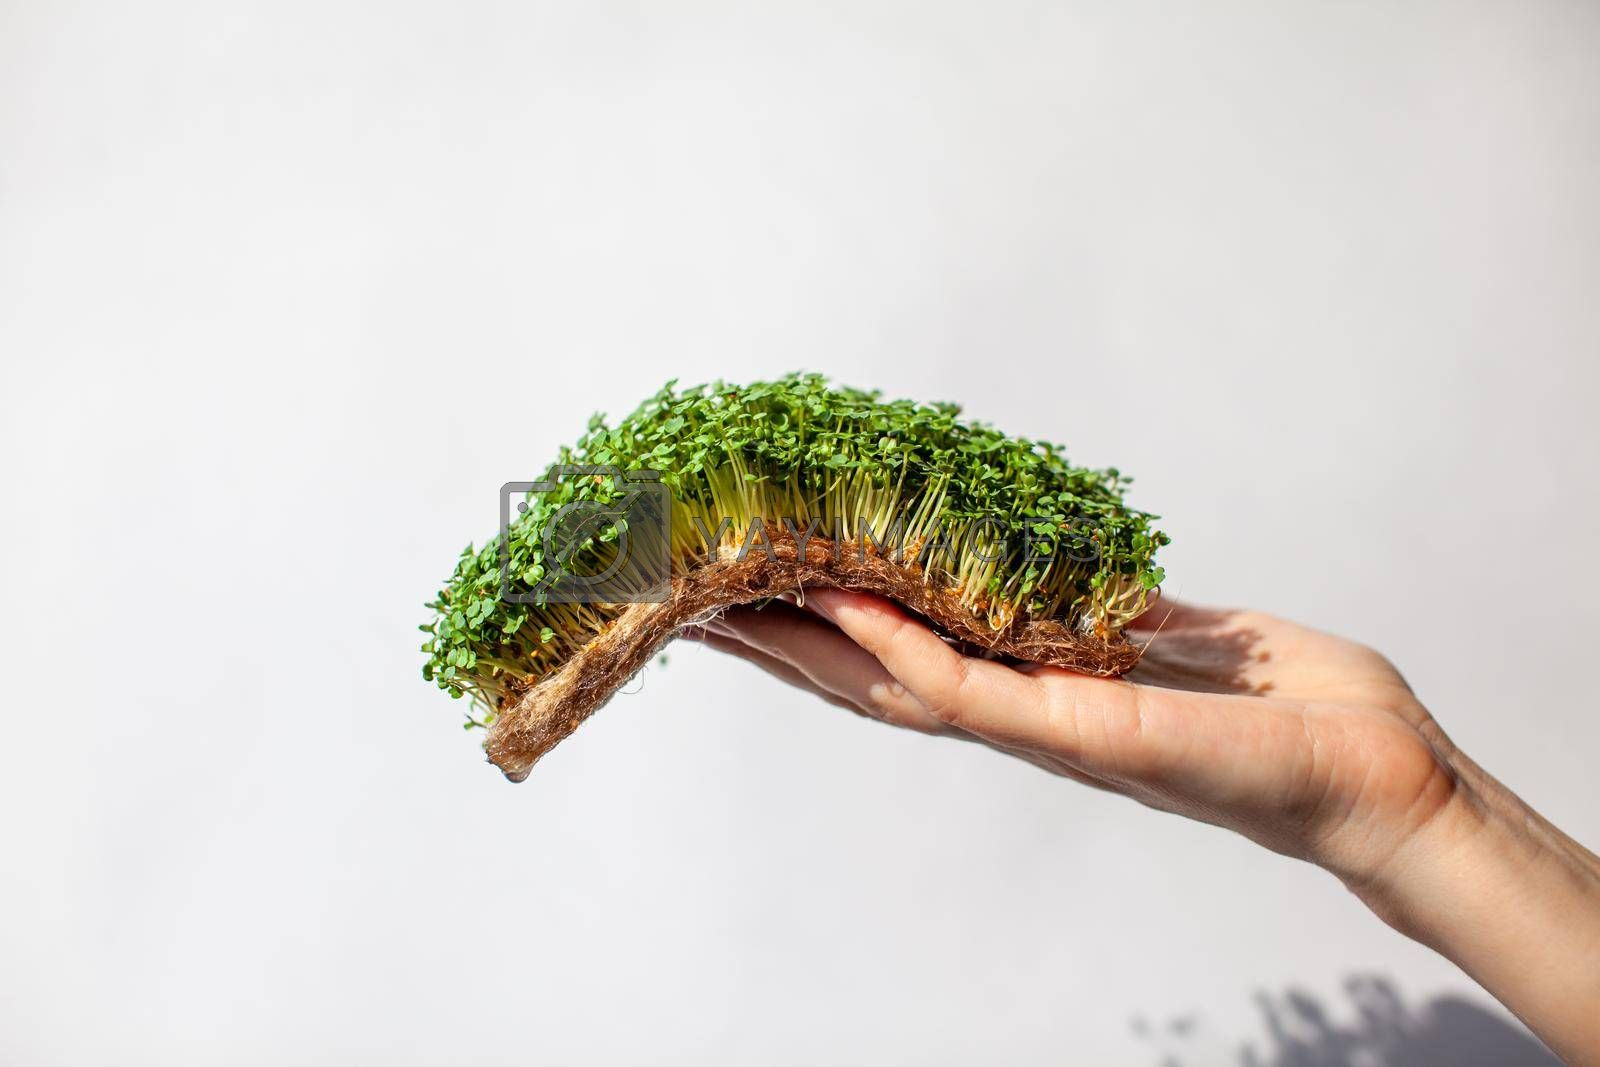 Micro-greens of mustard, arugula and other plants in a woman's hand. Growing mustard sprouts in close-up at home. The concept of vegan and healthy food. Sprouted seeds, micro-greens